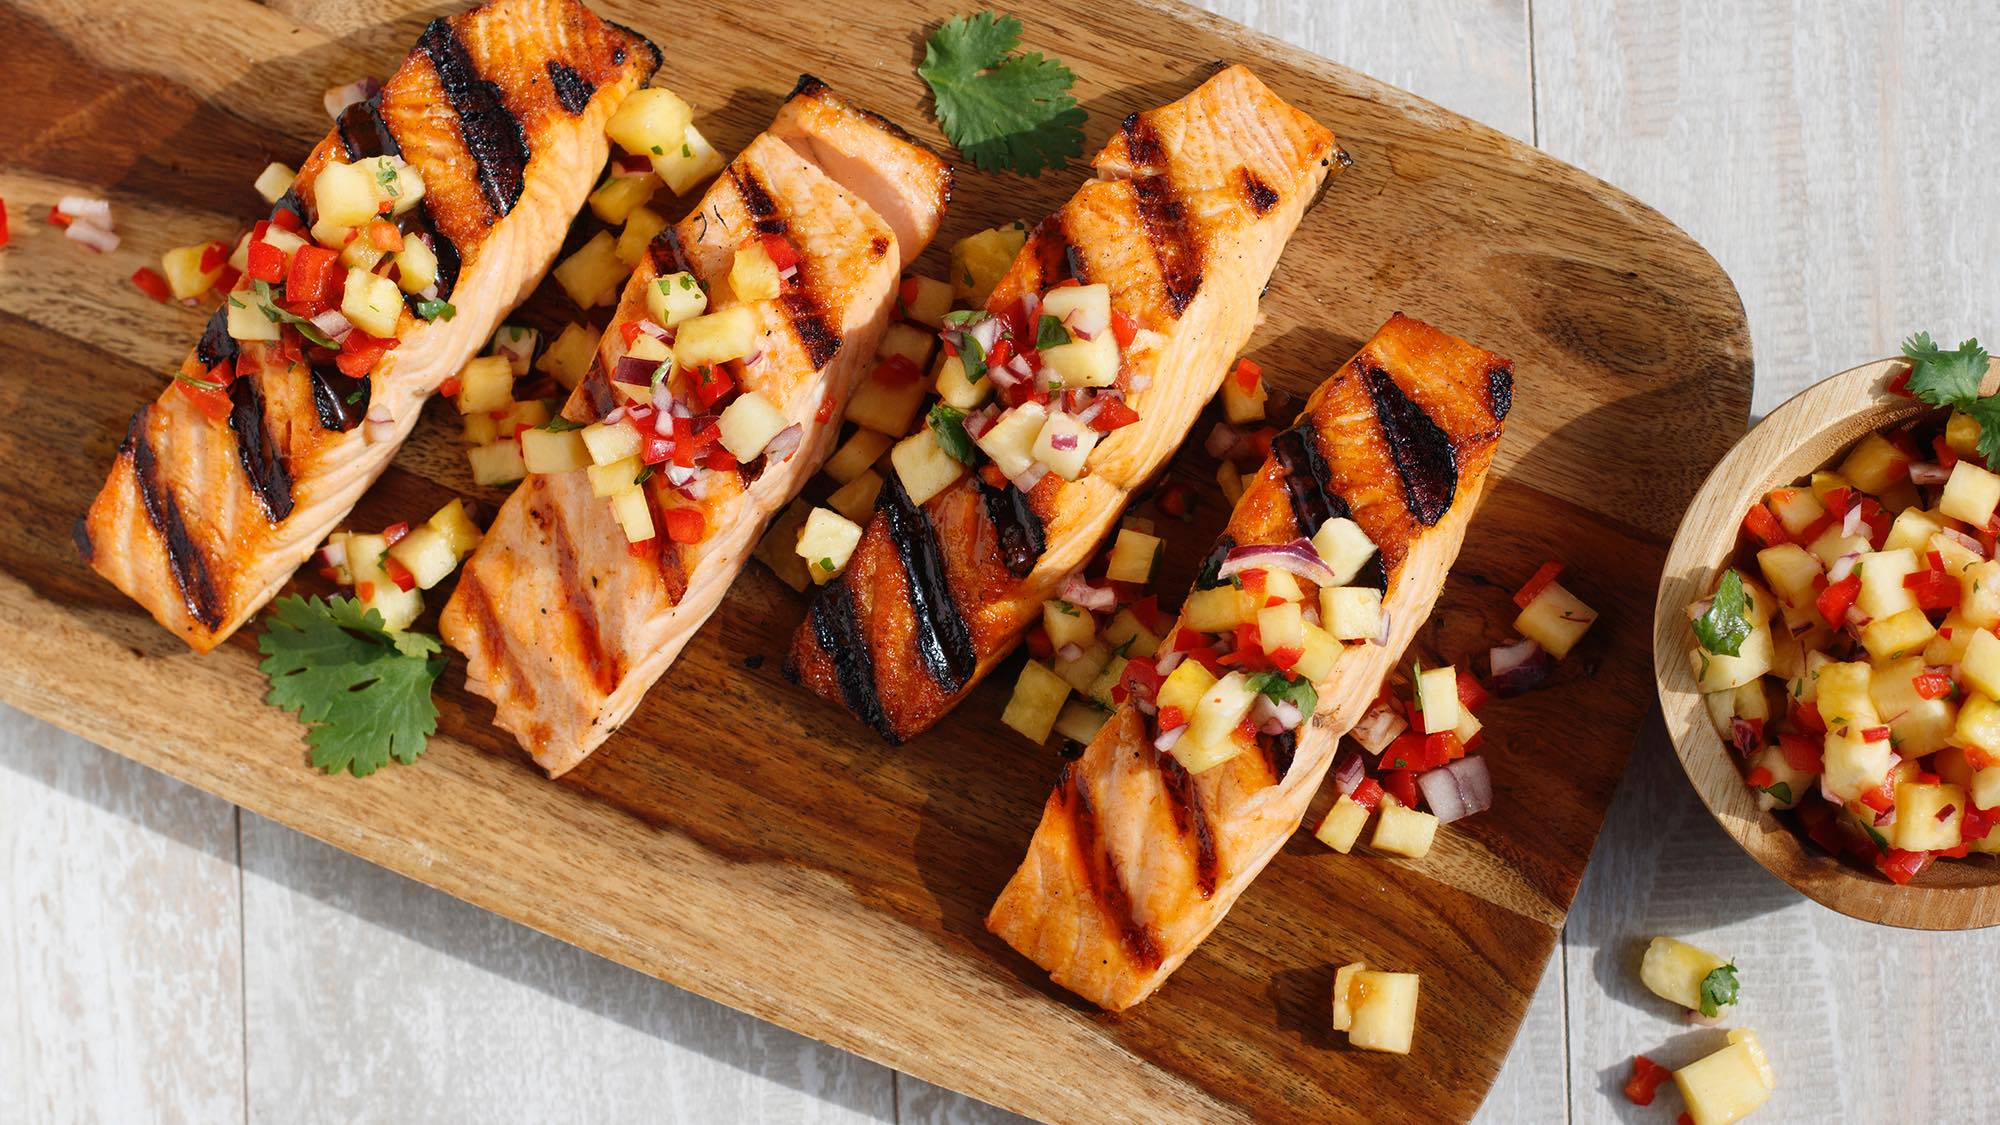 Lawry's Salmon with Pineapple Salsa